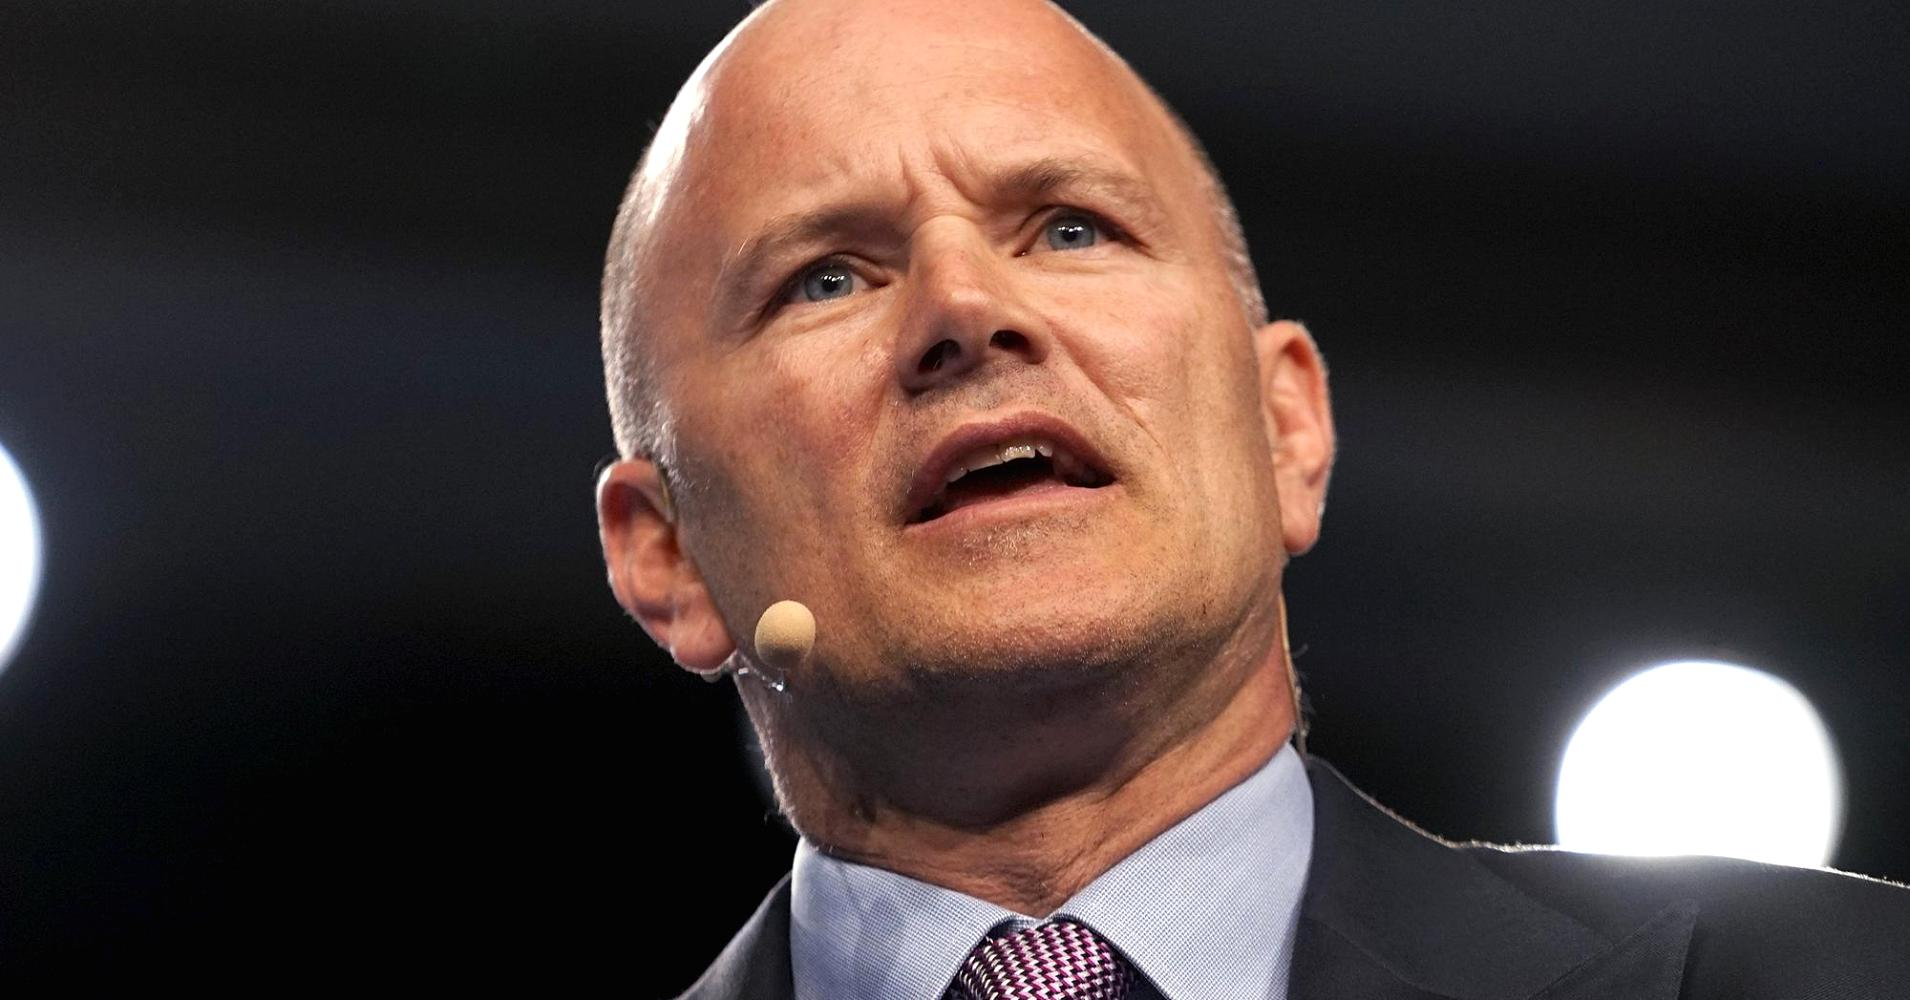 Michael novogratz bitcoin could